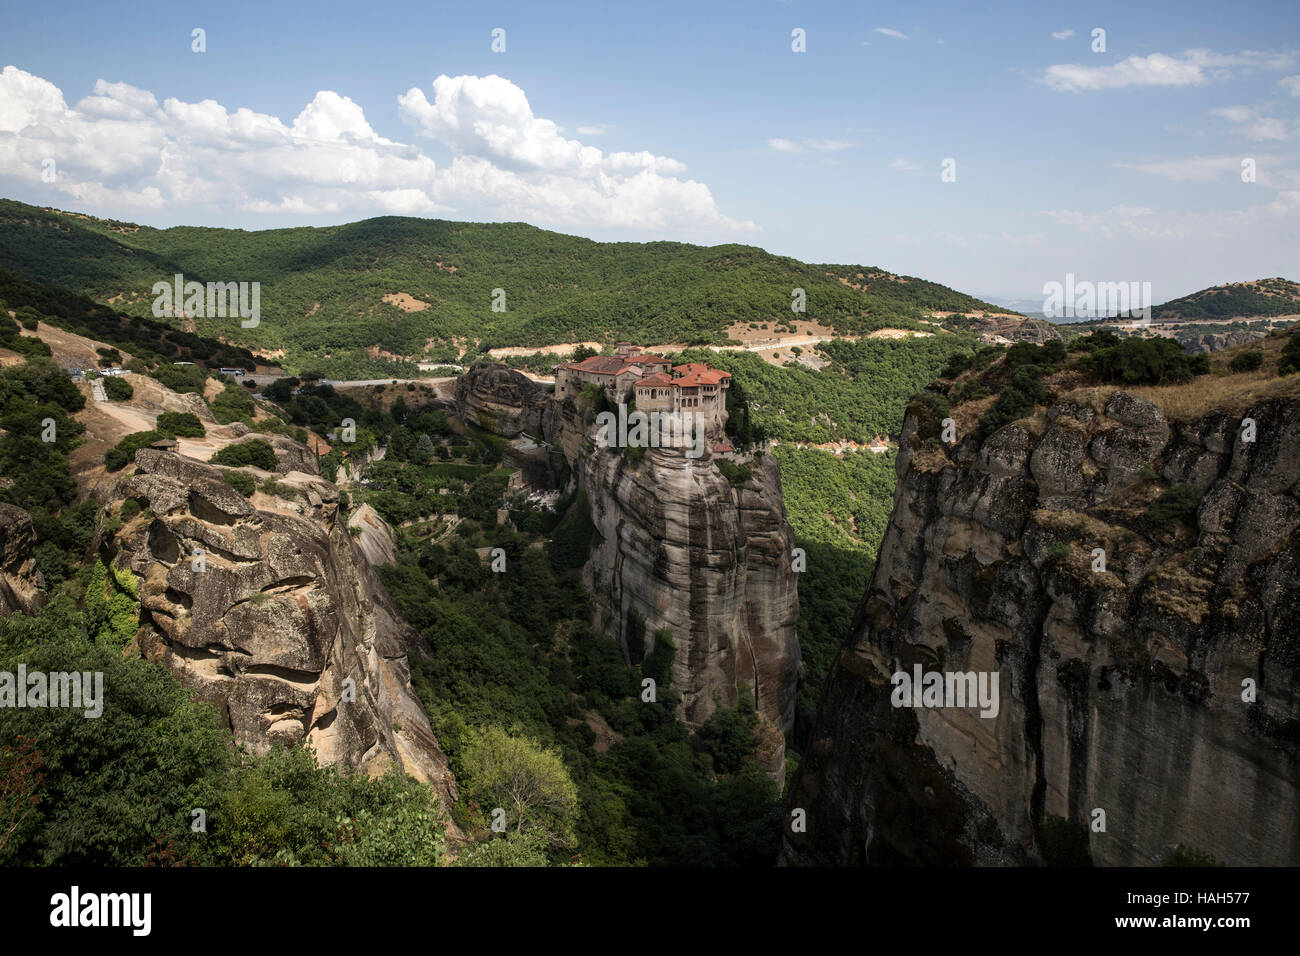 The Monastery of Varlaam, Meteora on July 15, 2016. - Stock Image